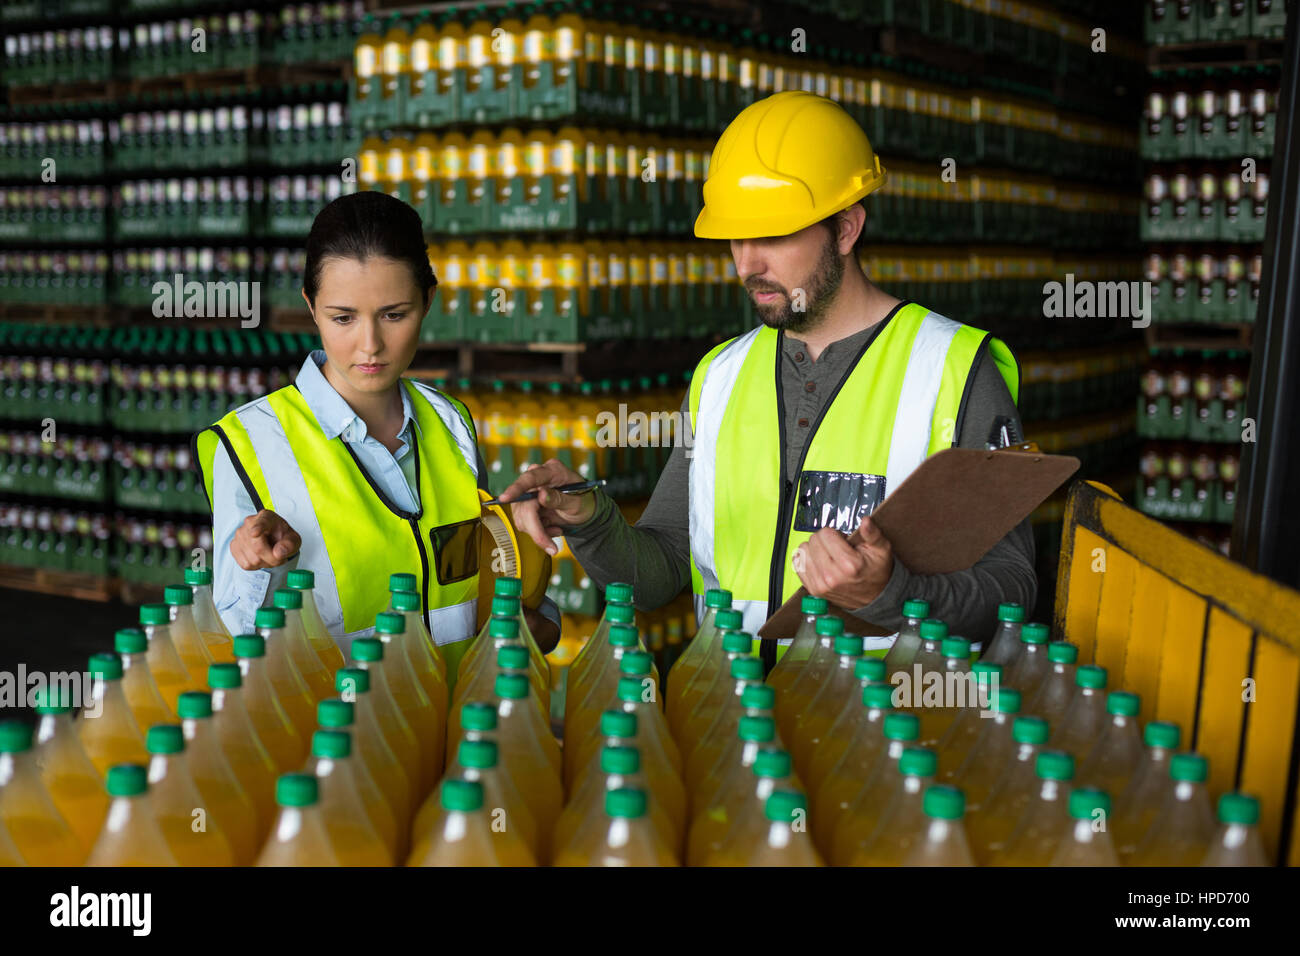 Two factory workers monitoring cold drink bottles at drinks production factory Stock Photo